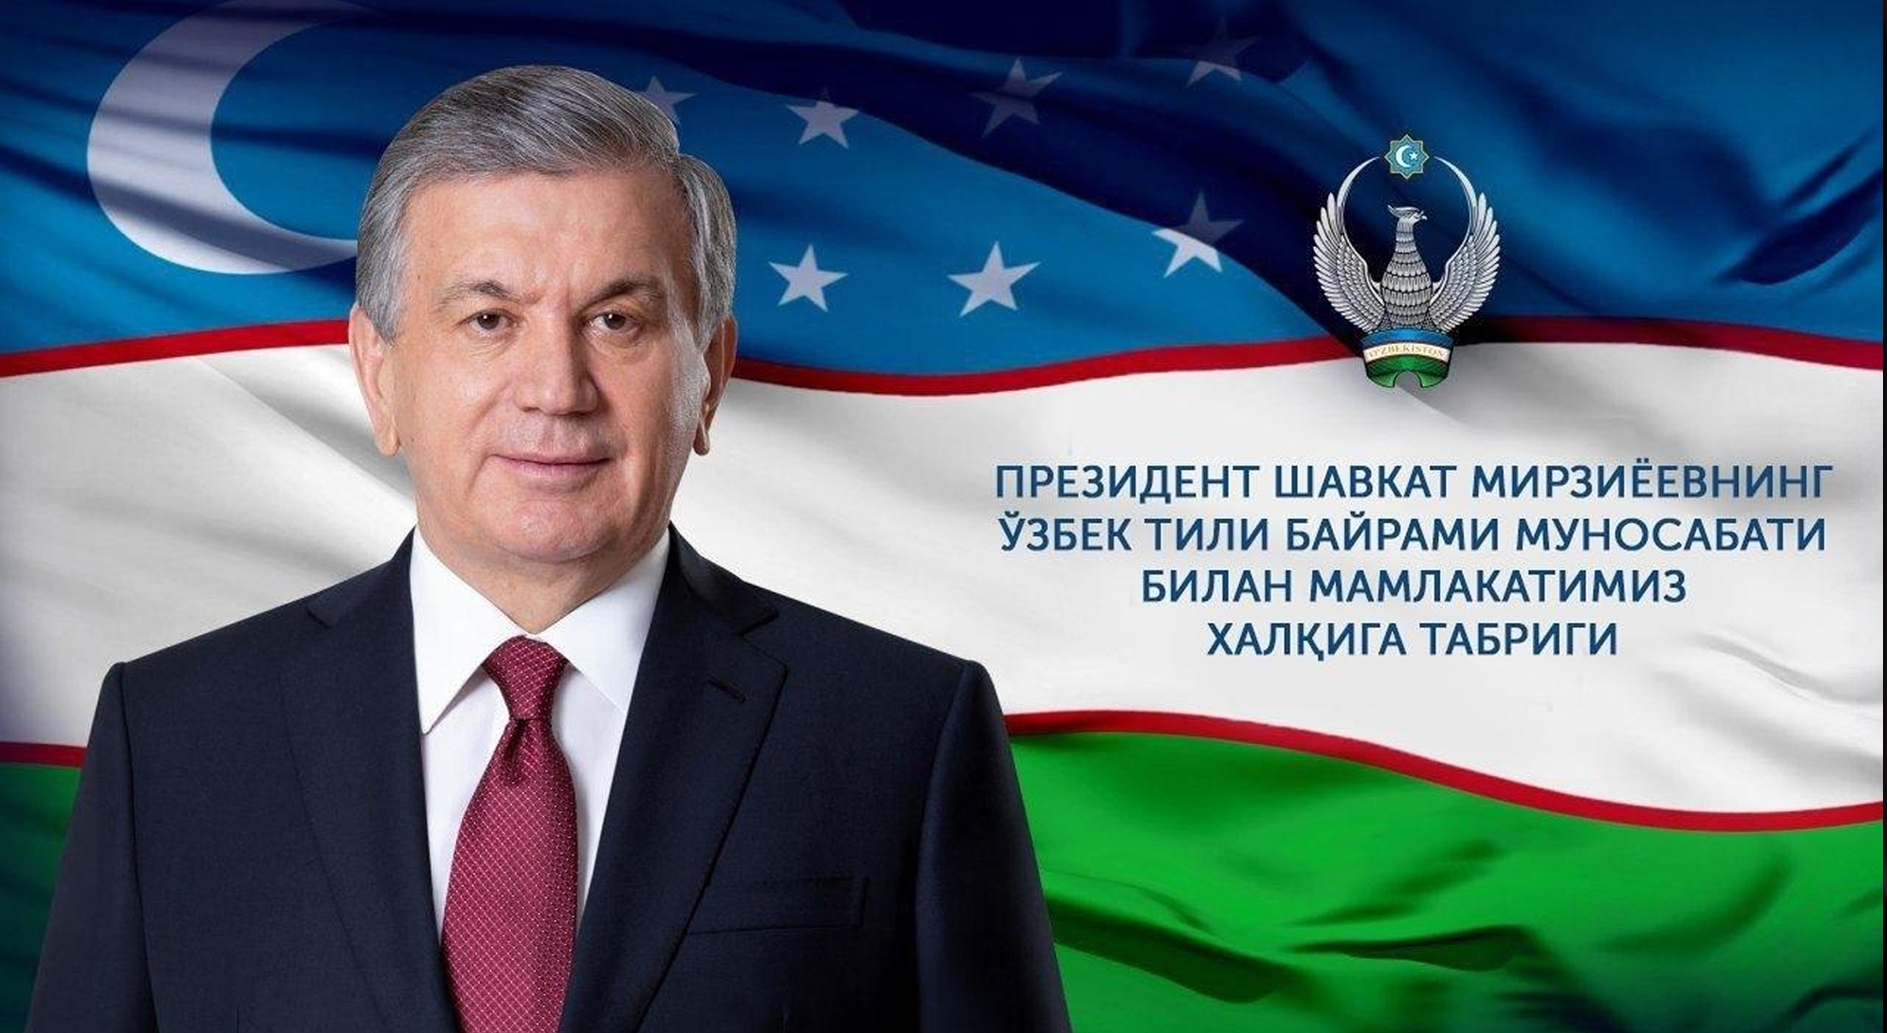 A government graphic of President Mirziyoyev congratulating the public on the event of Uzbek Language Day.